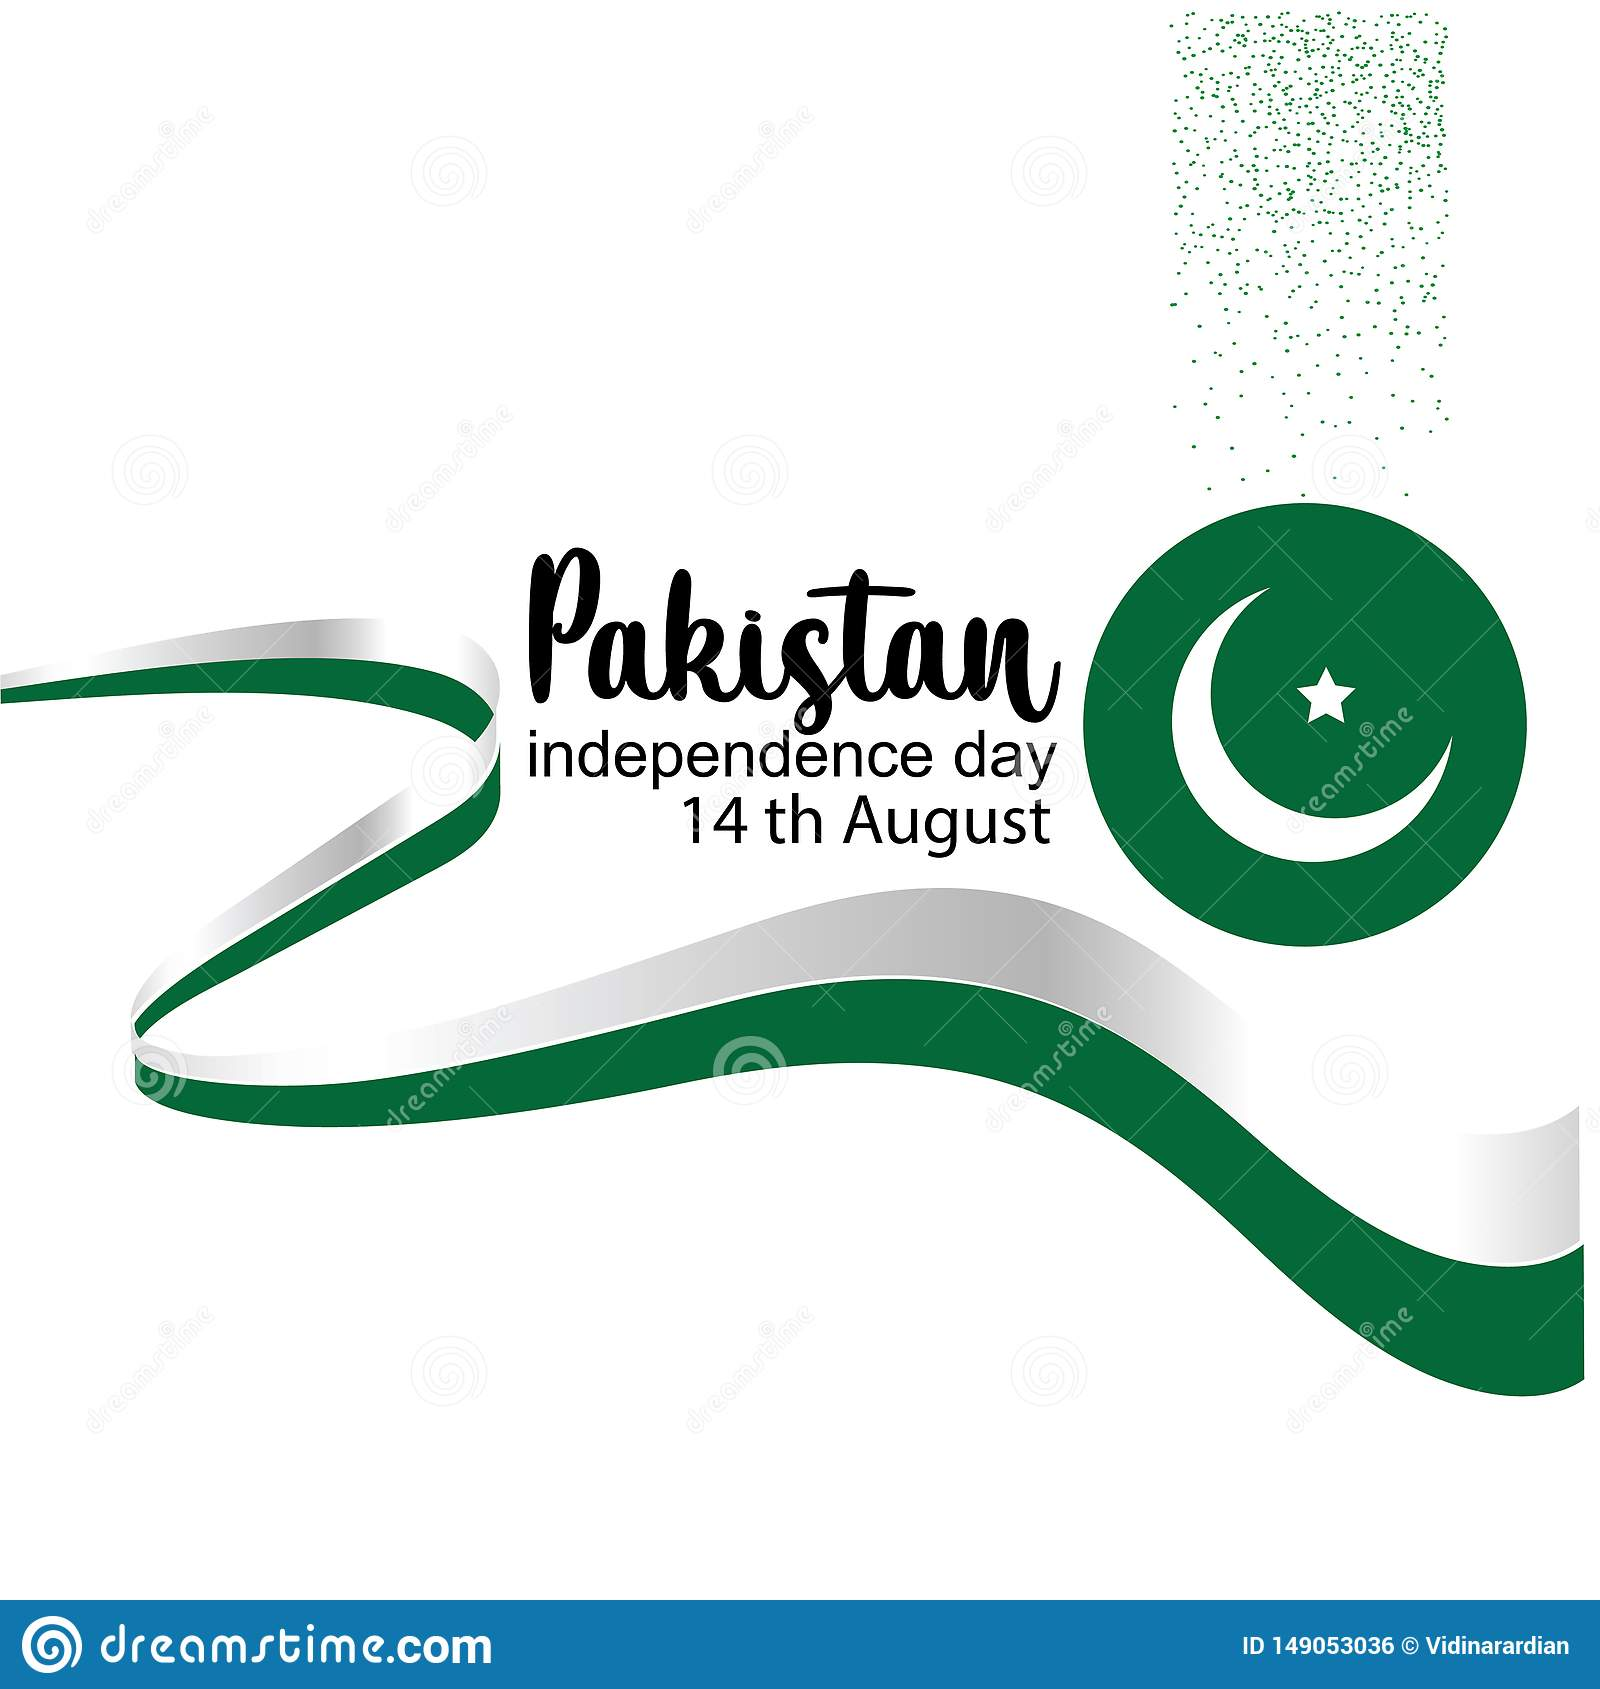 Celebrating Pakistan Independence Day creative vector illustration. 14th August pakistan independence. vector